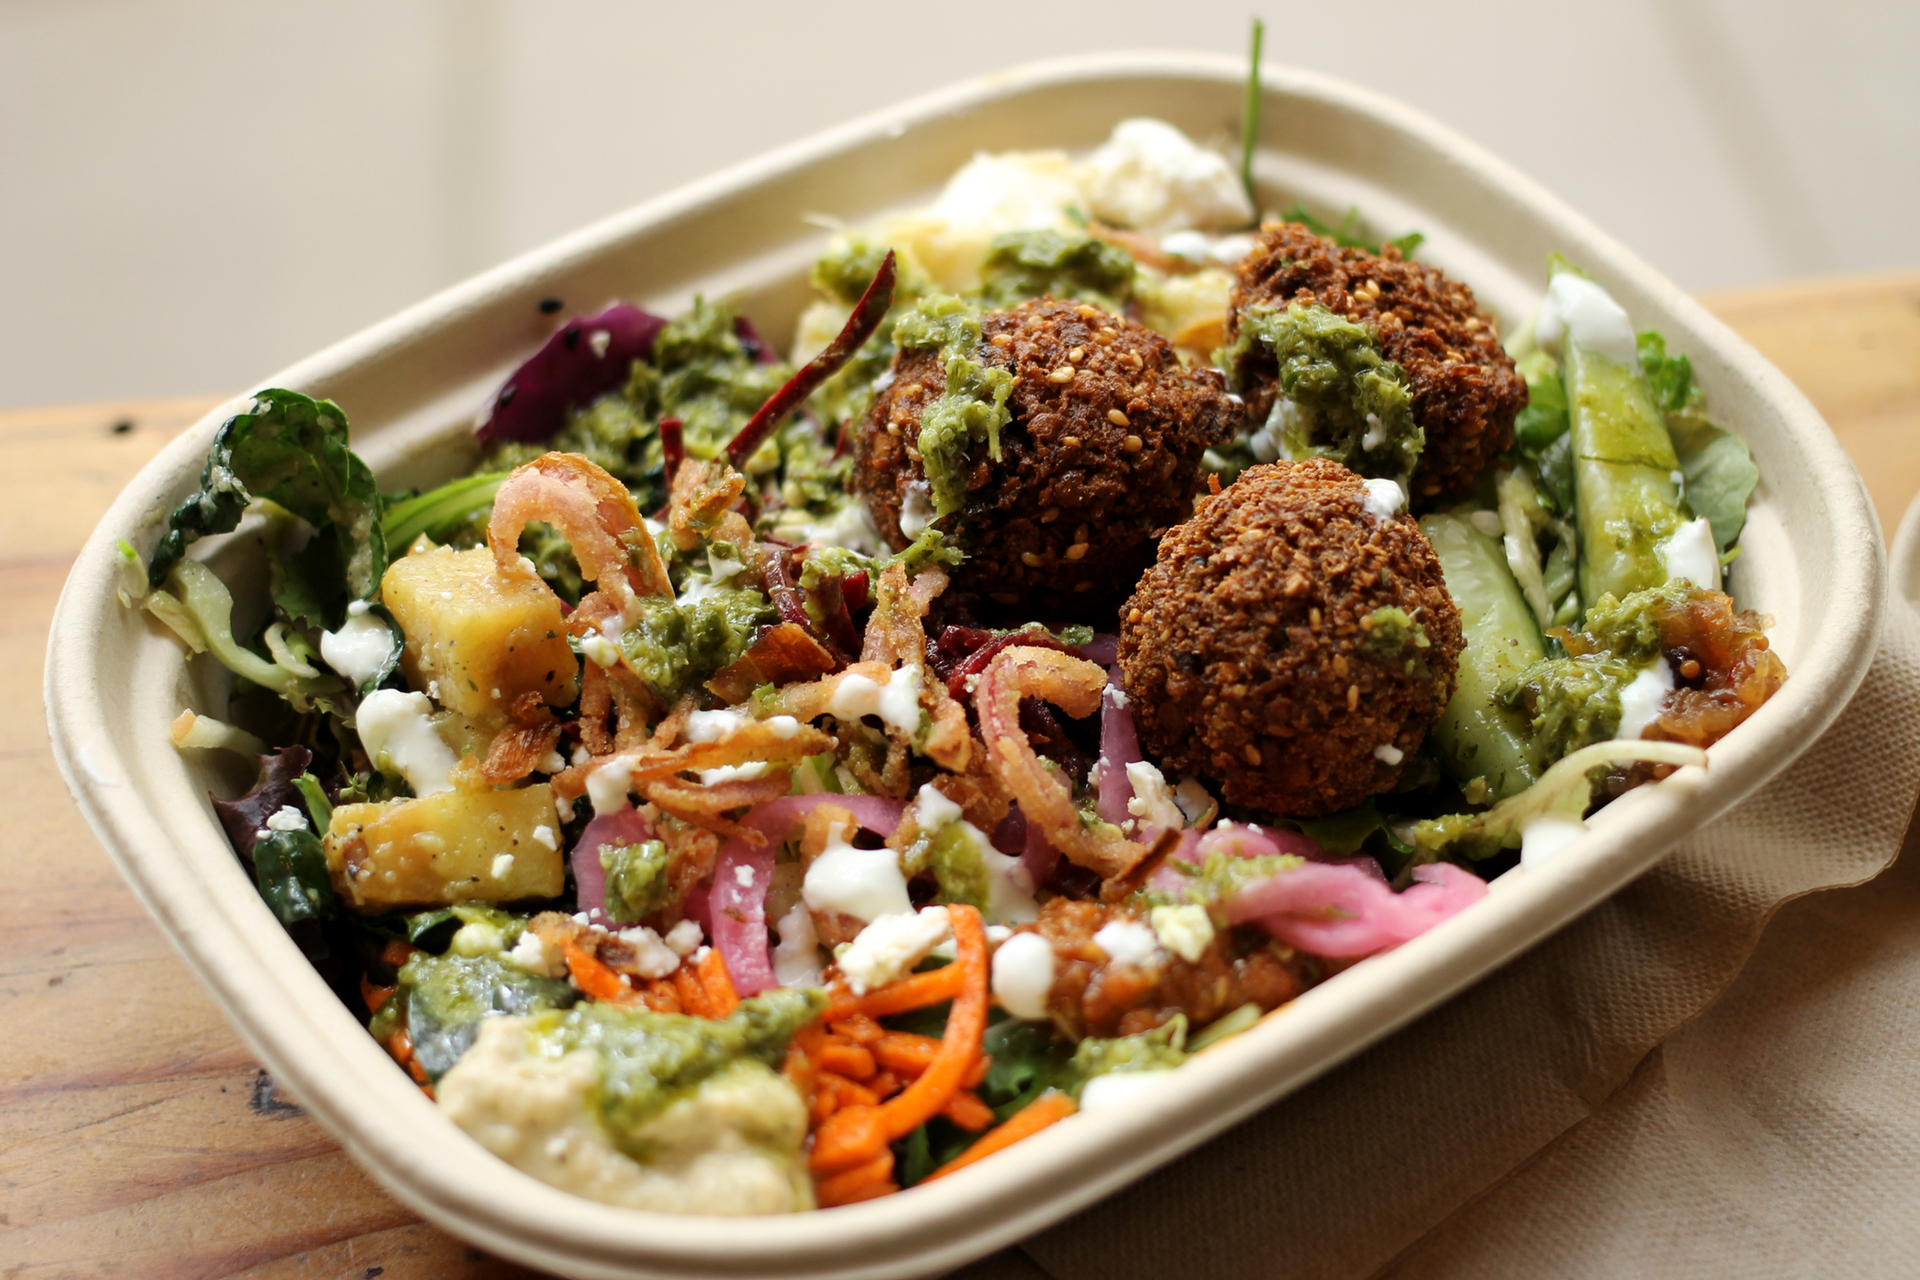 A falafel salad from Liba Falafel.